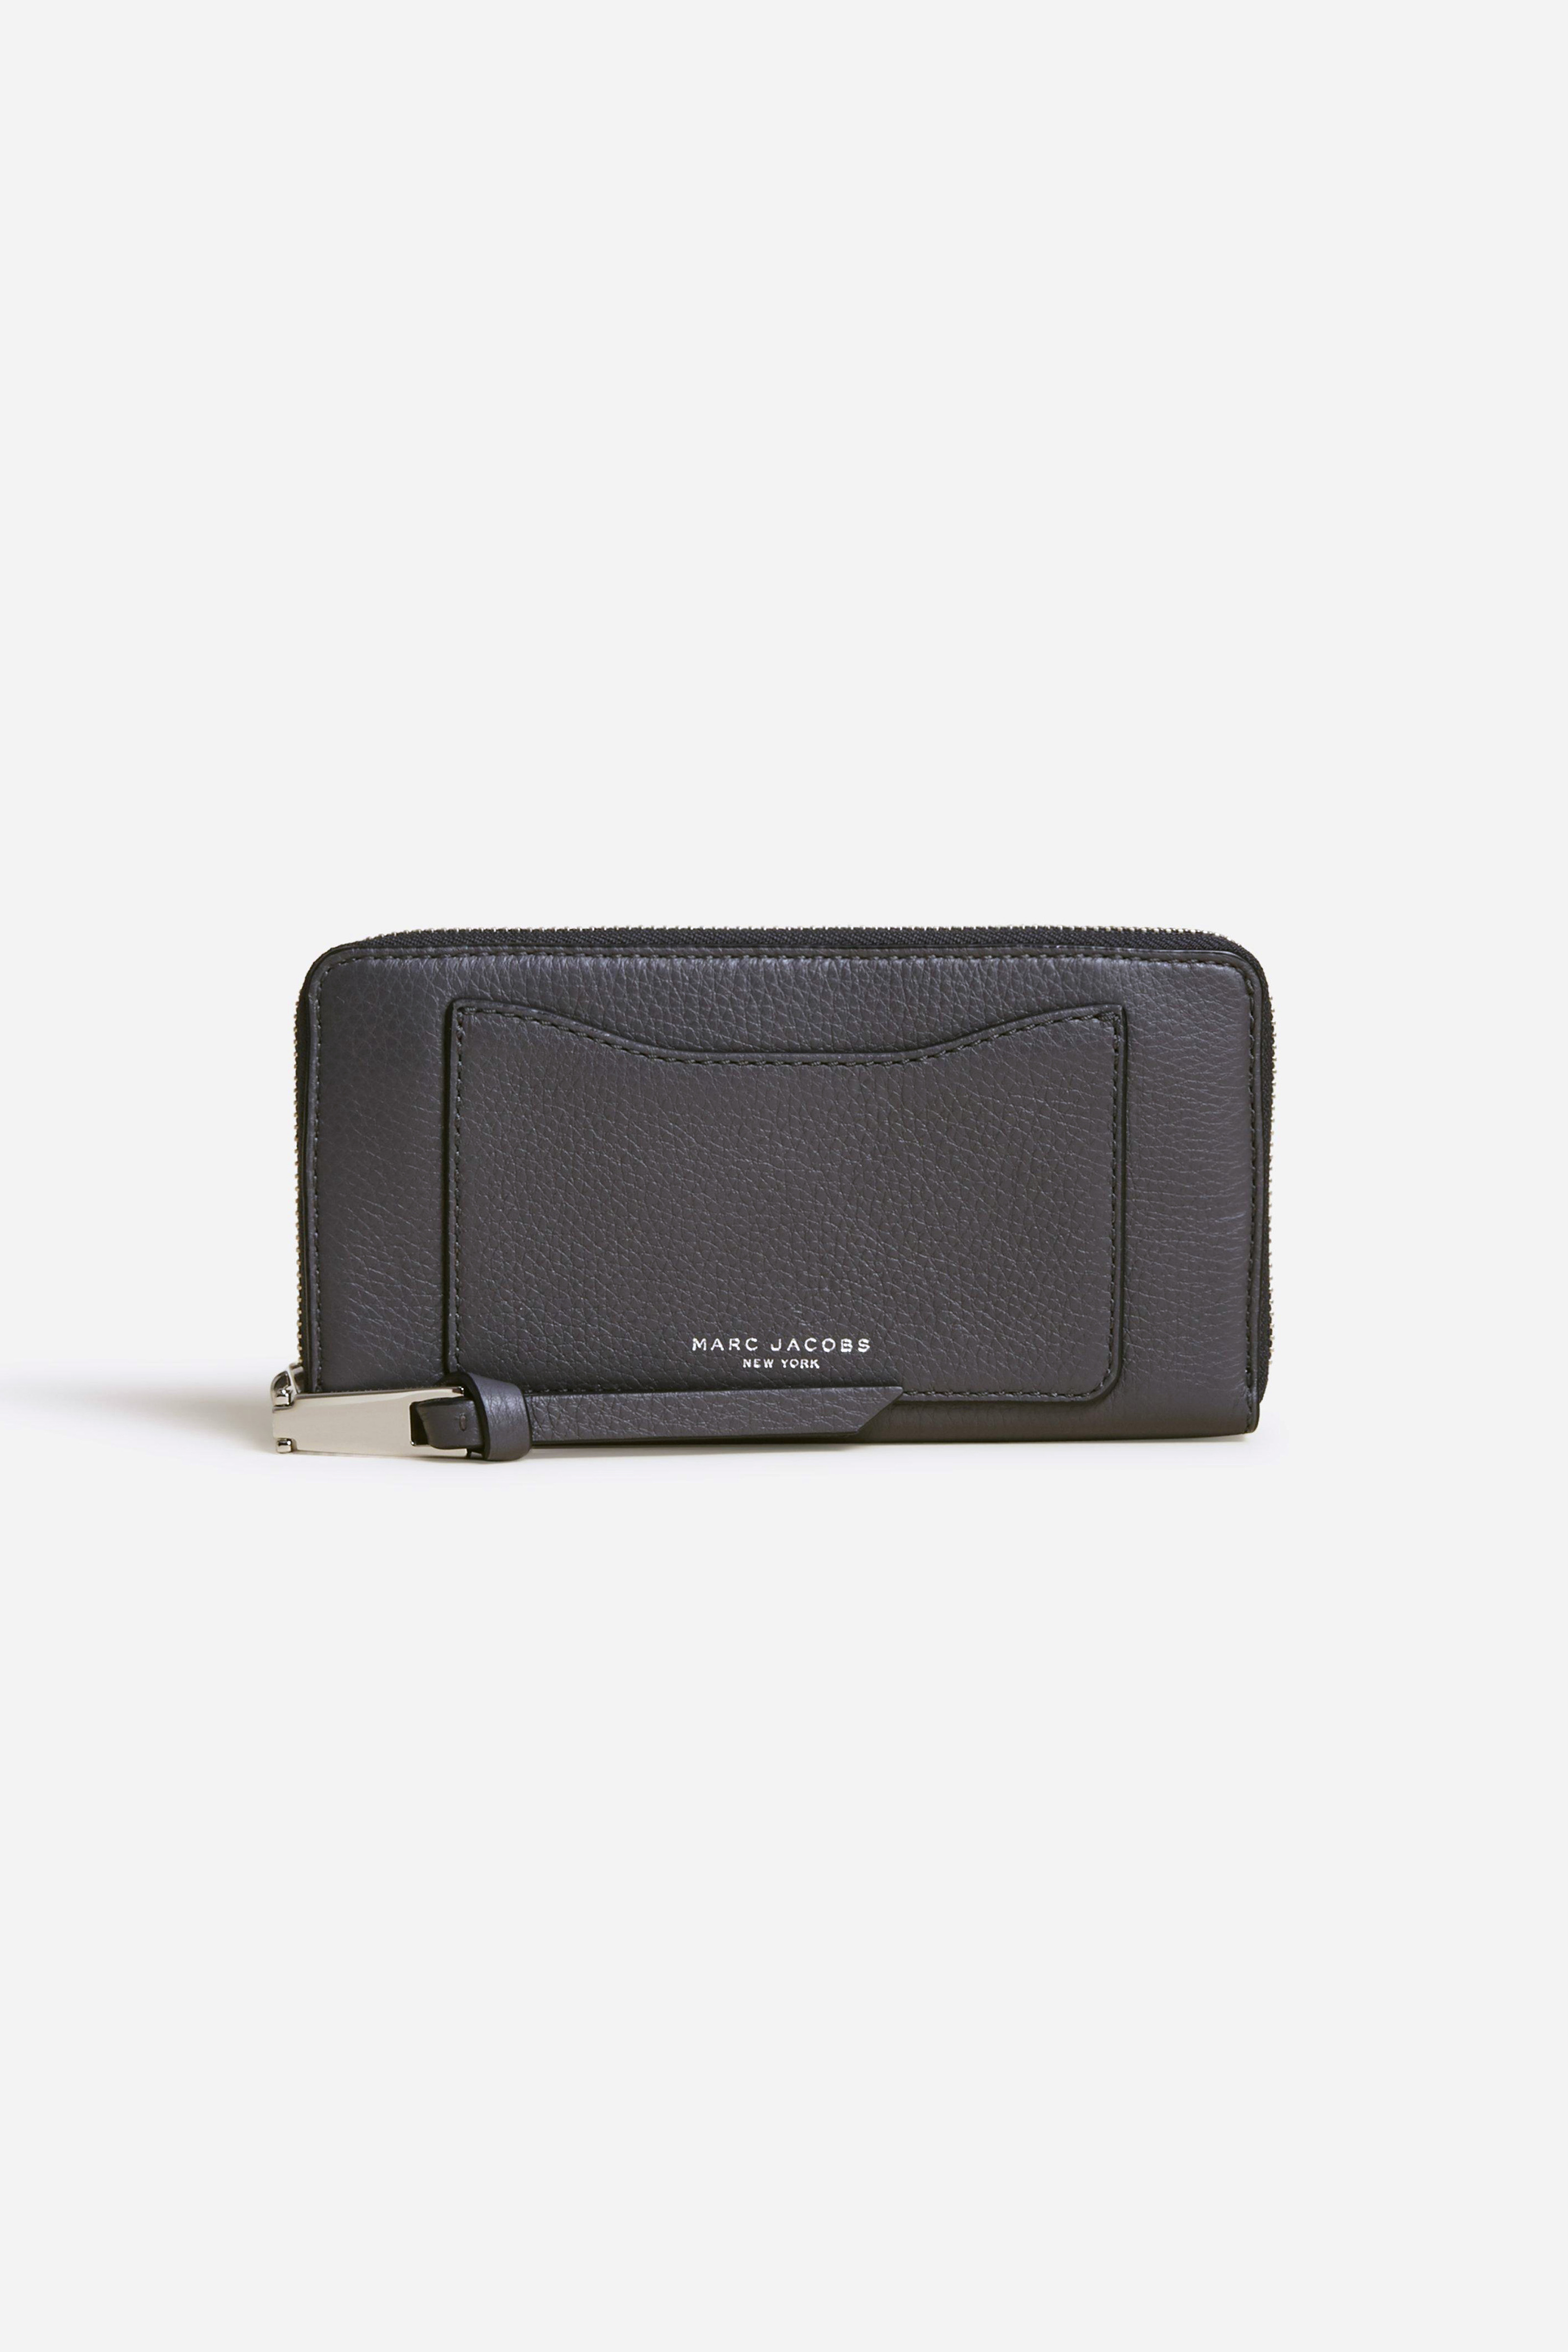 Marc Jacobs 32 - Recruit Continental Wallet - Shadow